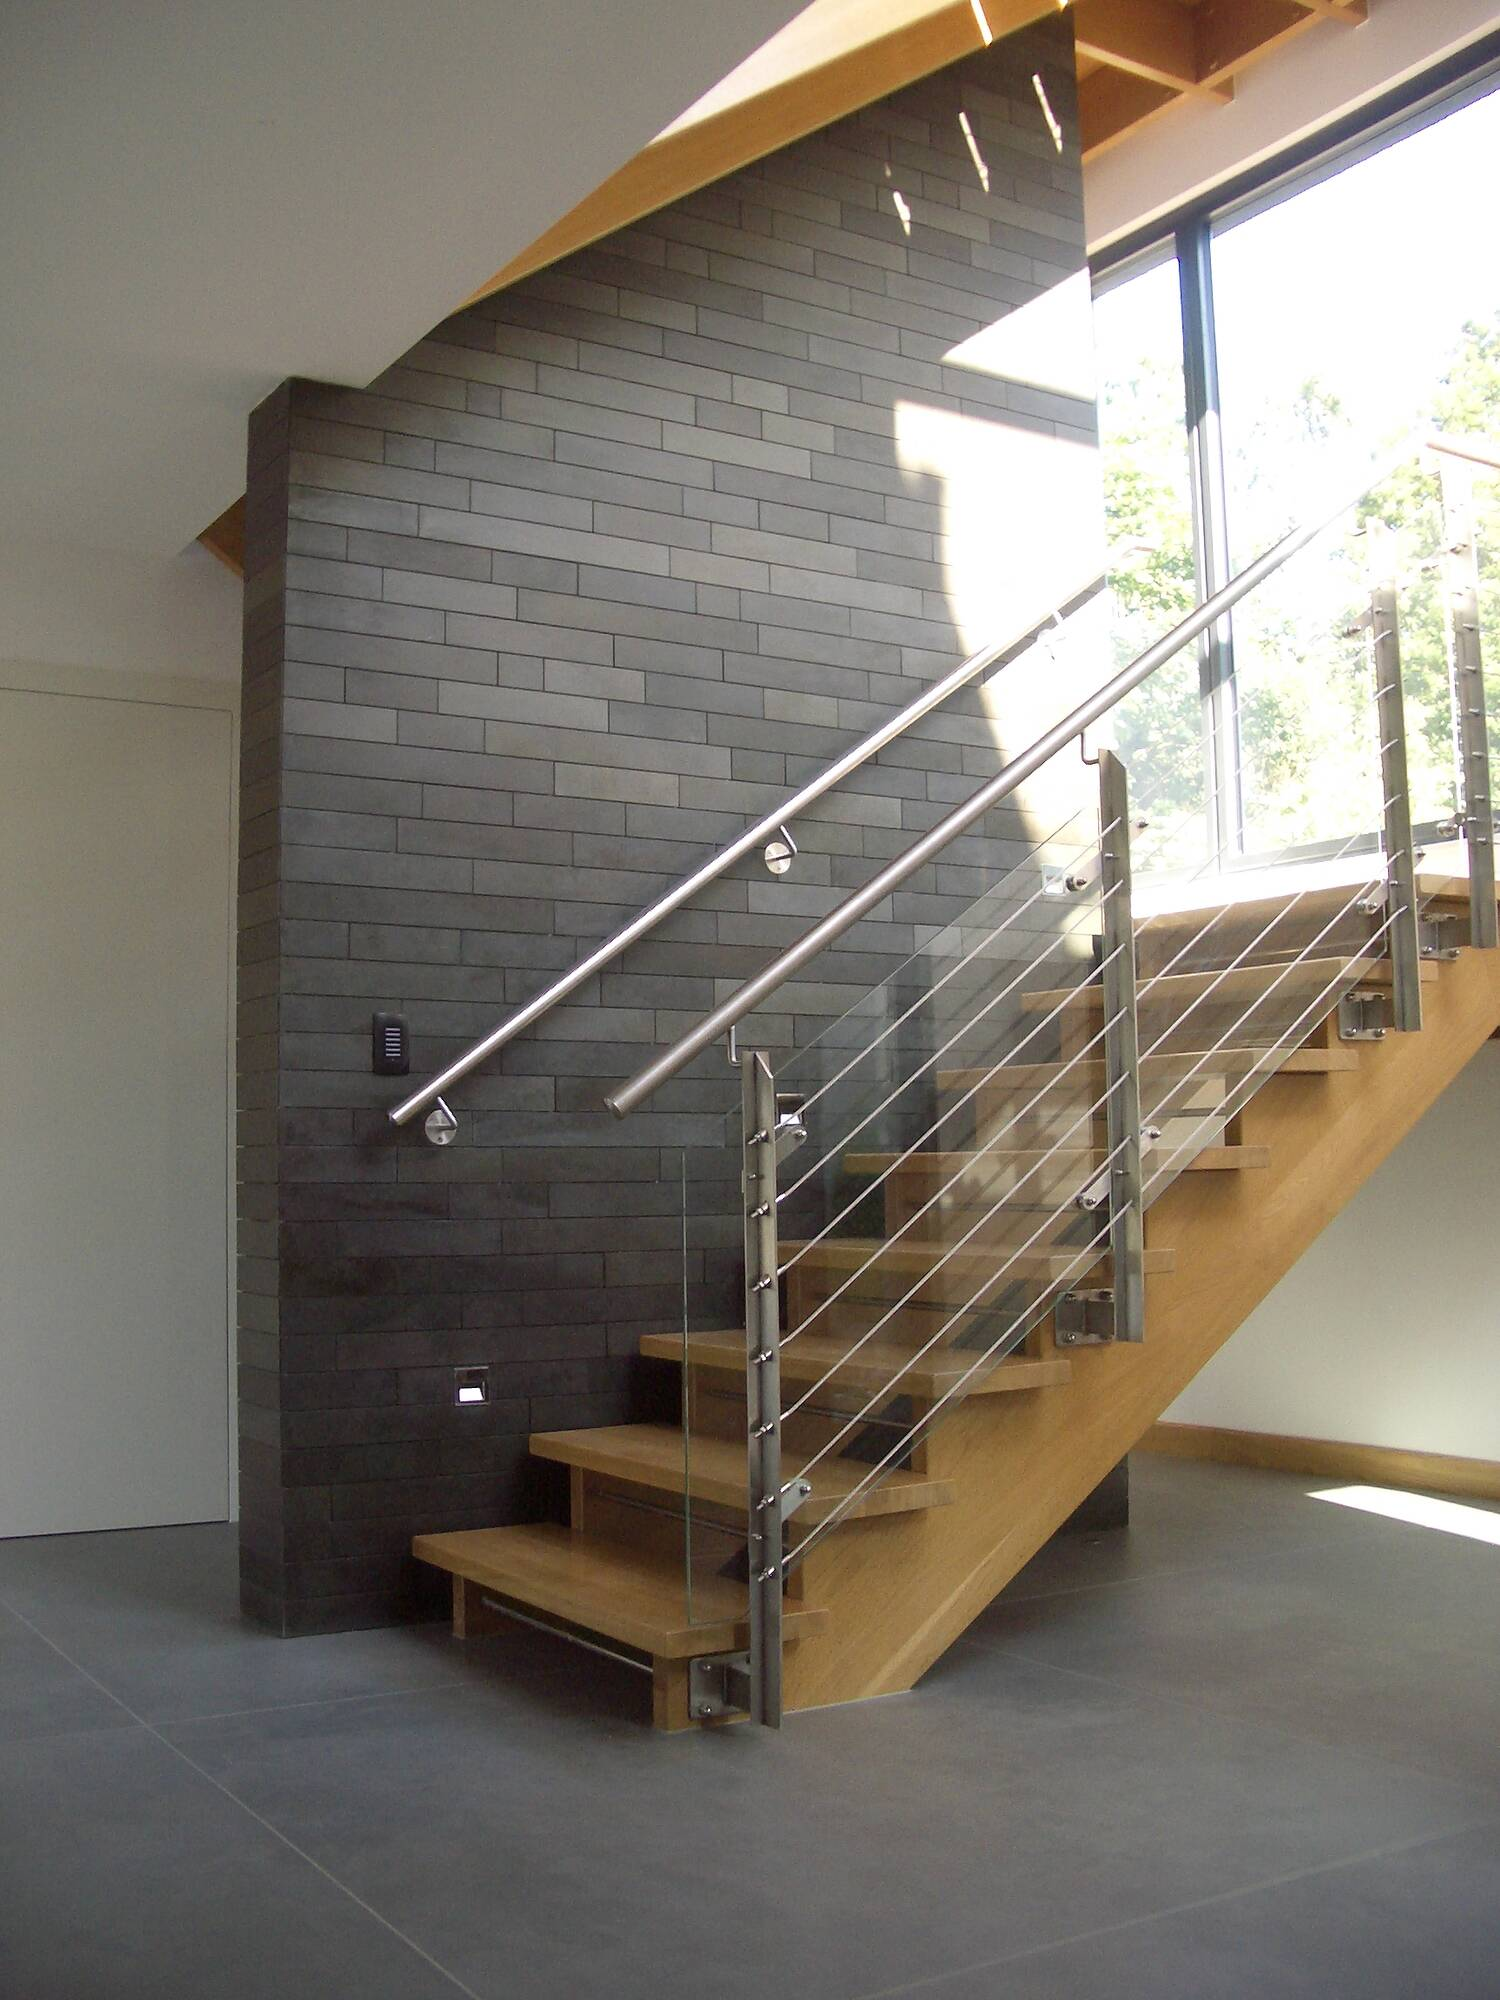 Sustainable prefab home with gym and cinema room